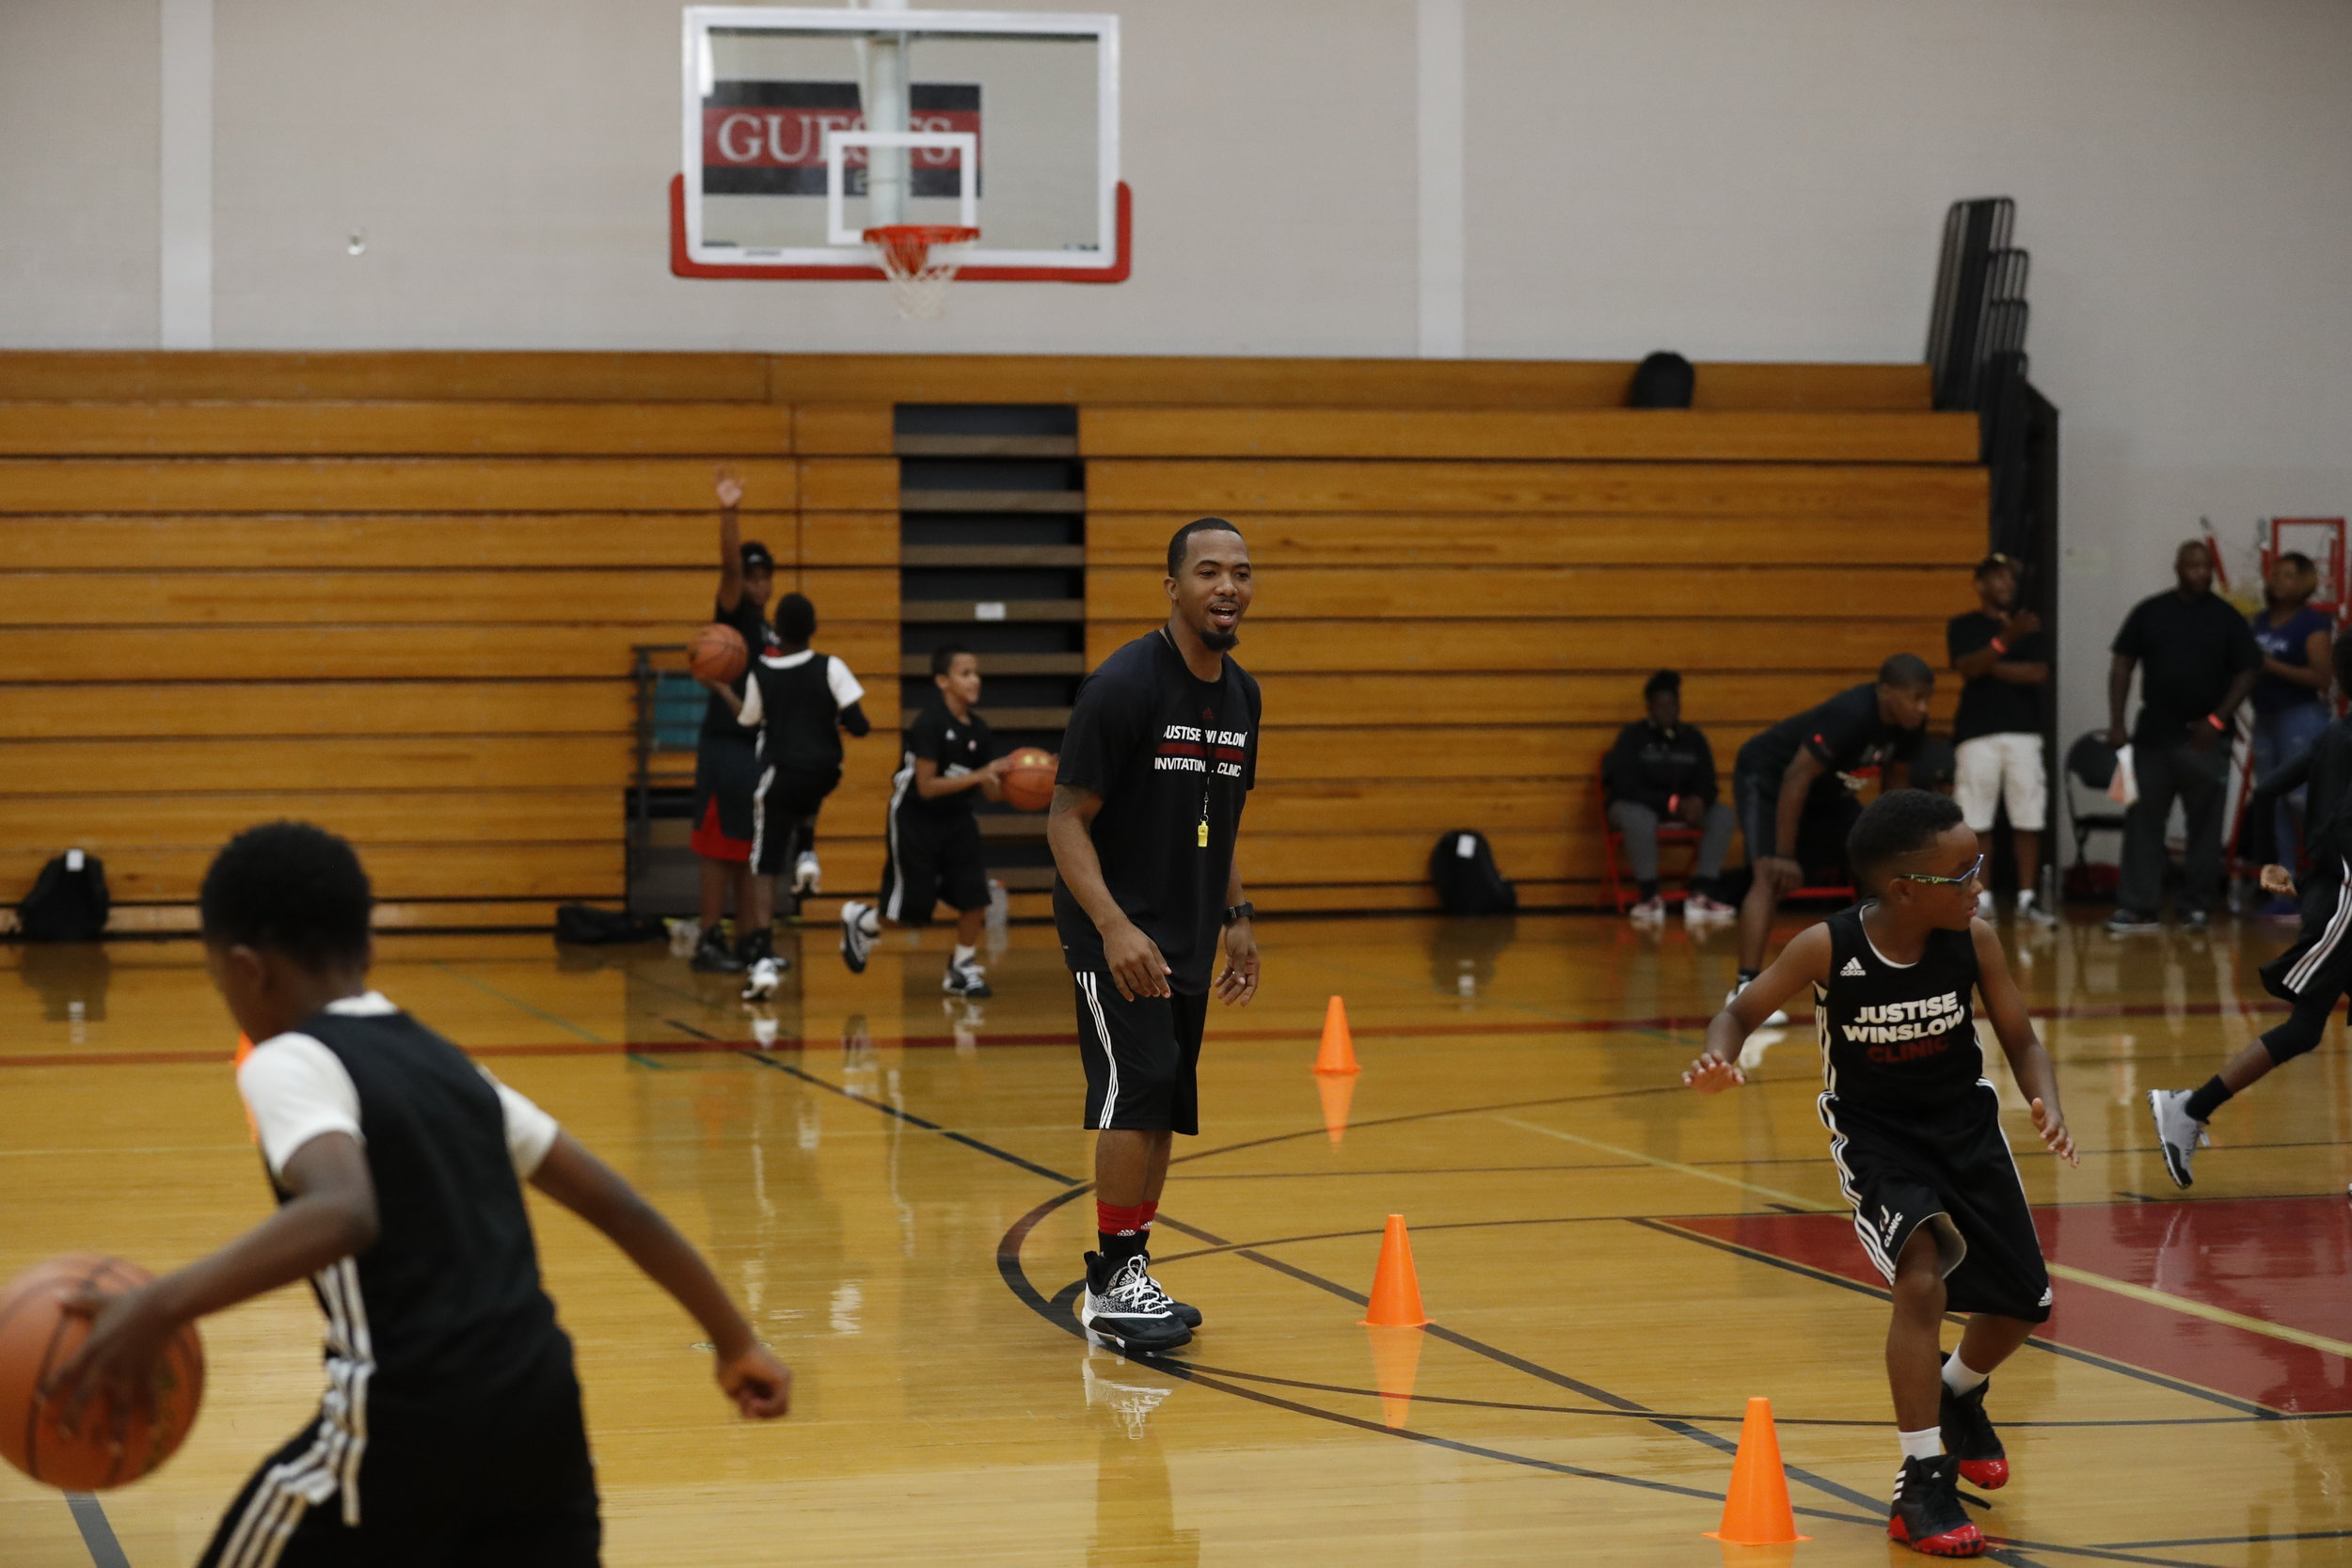 Justise Winslow Invitational Camp 030.jpg